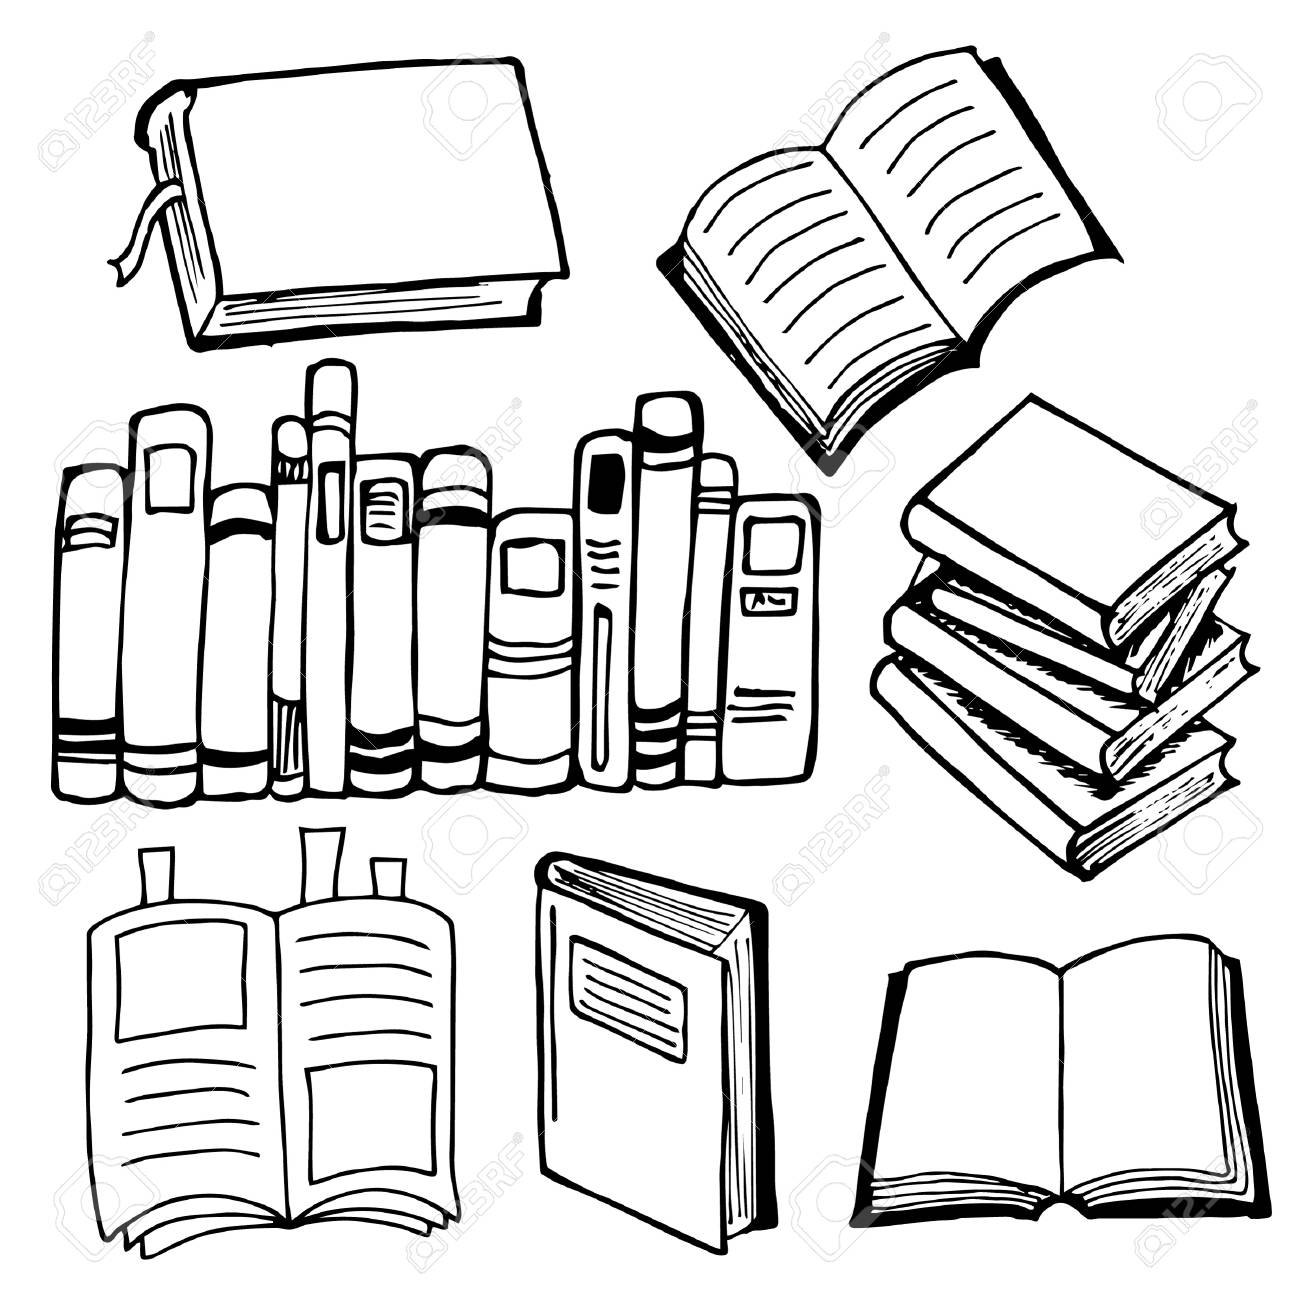 Books and notebooks set of black and white sketches design elements hand drawing